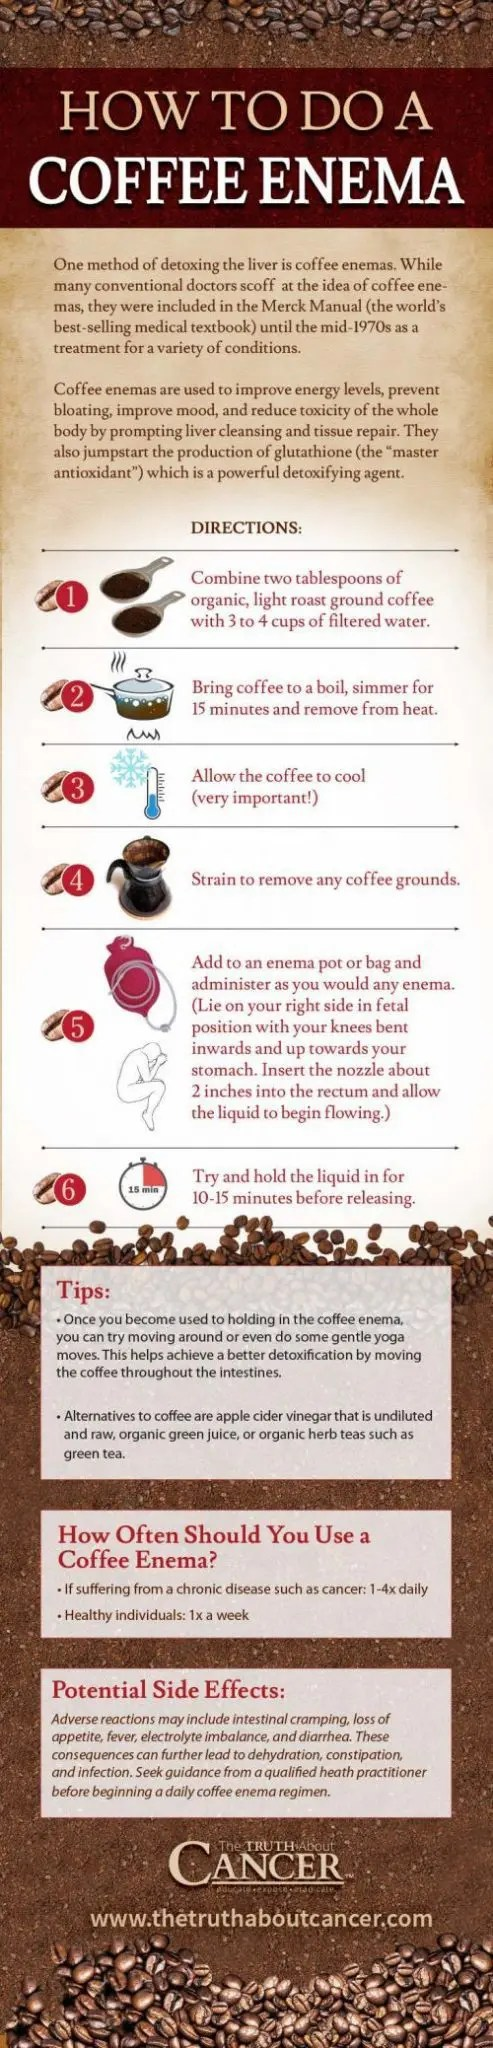 How-To-Do-a-Café-Enema - El Paso Quiropráctico